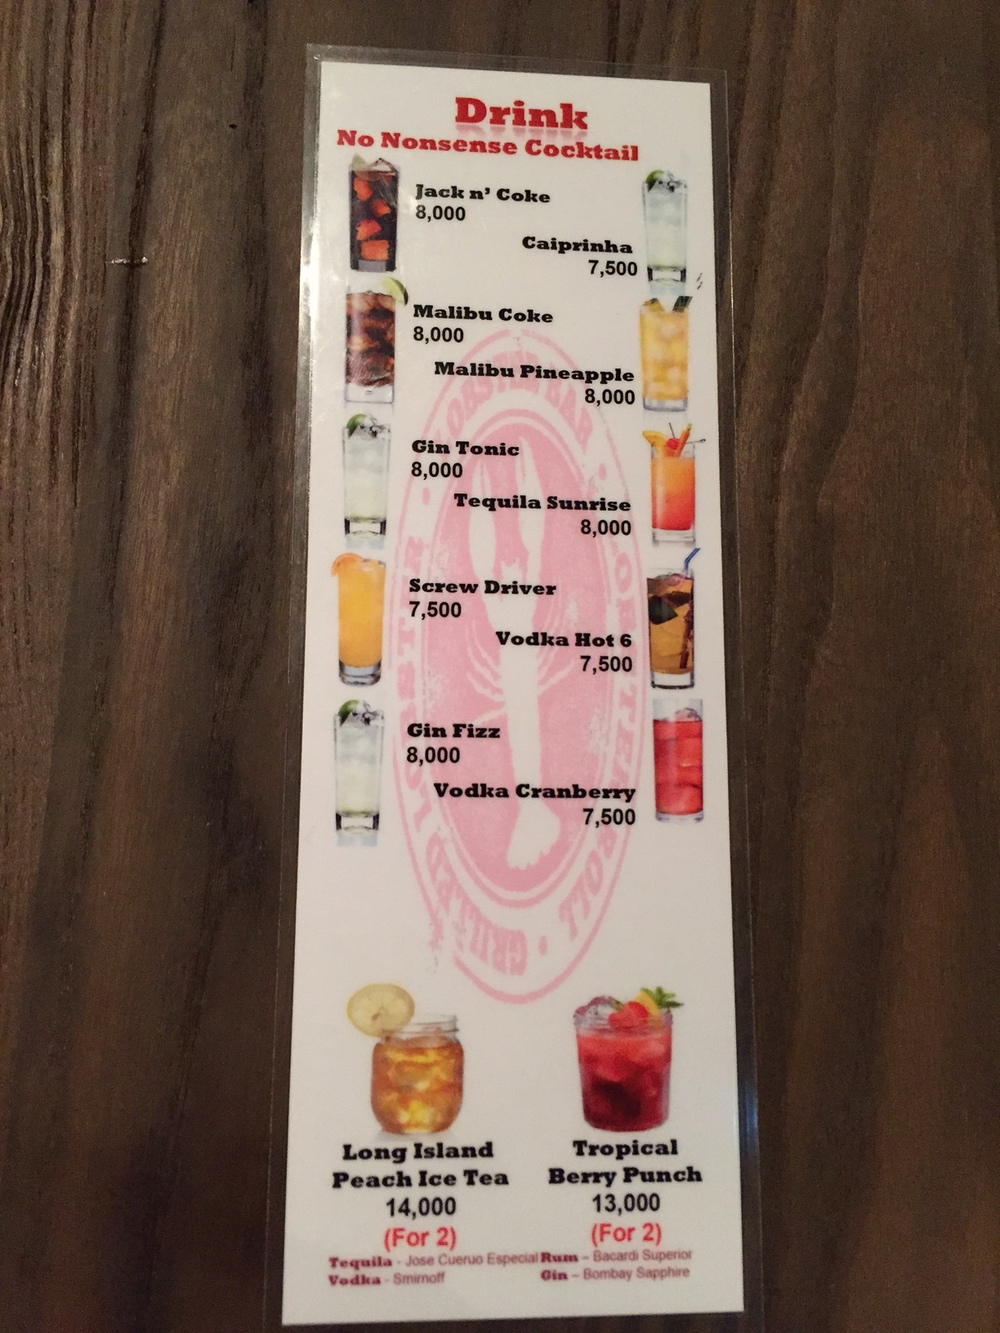 Their updated drink and cocktail menu.